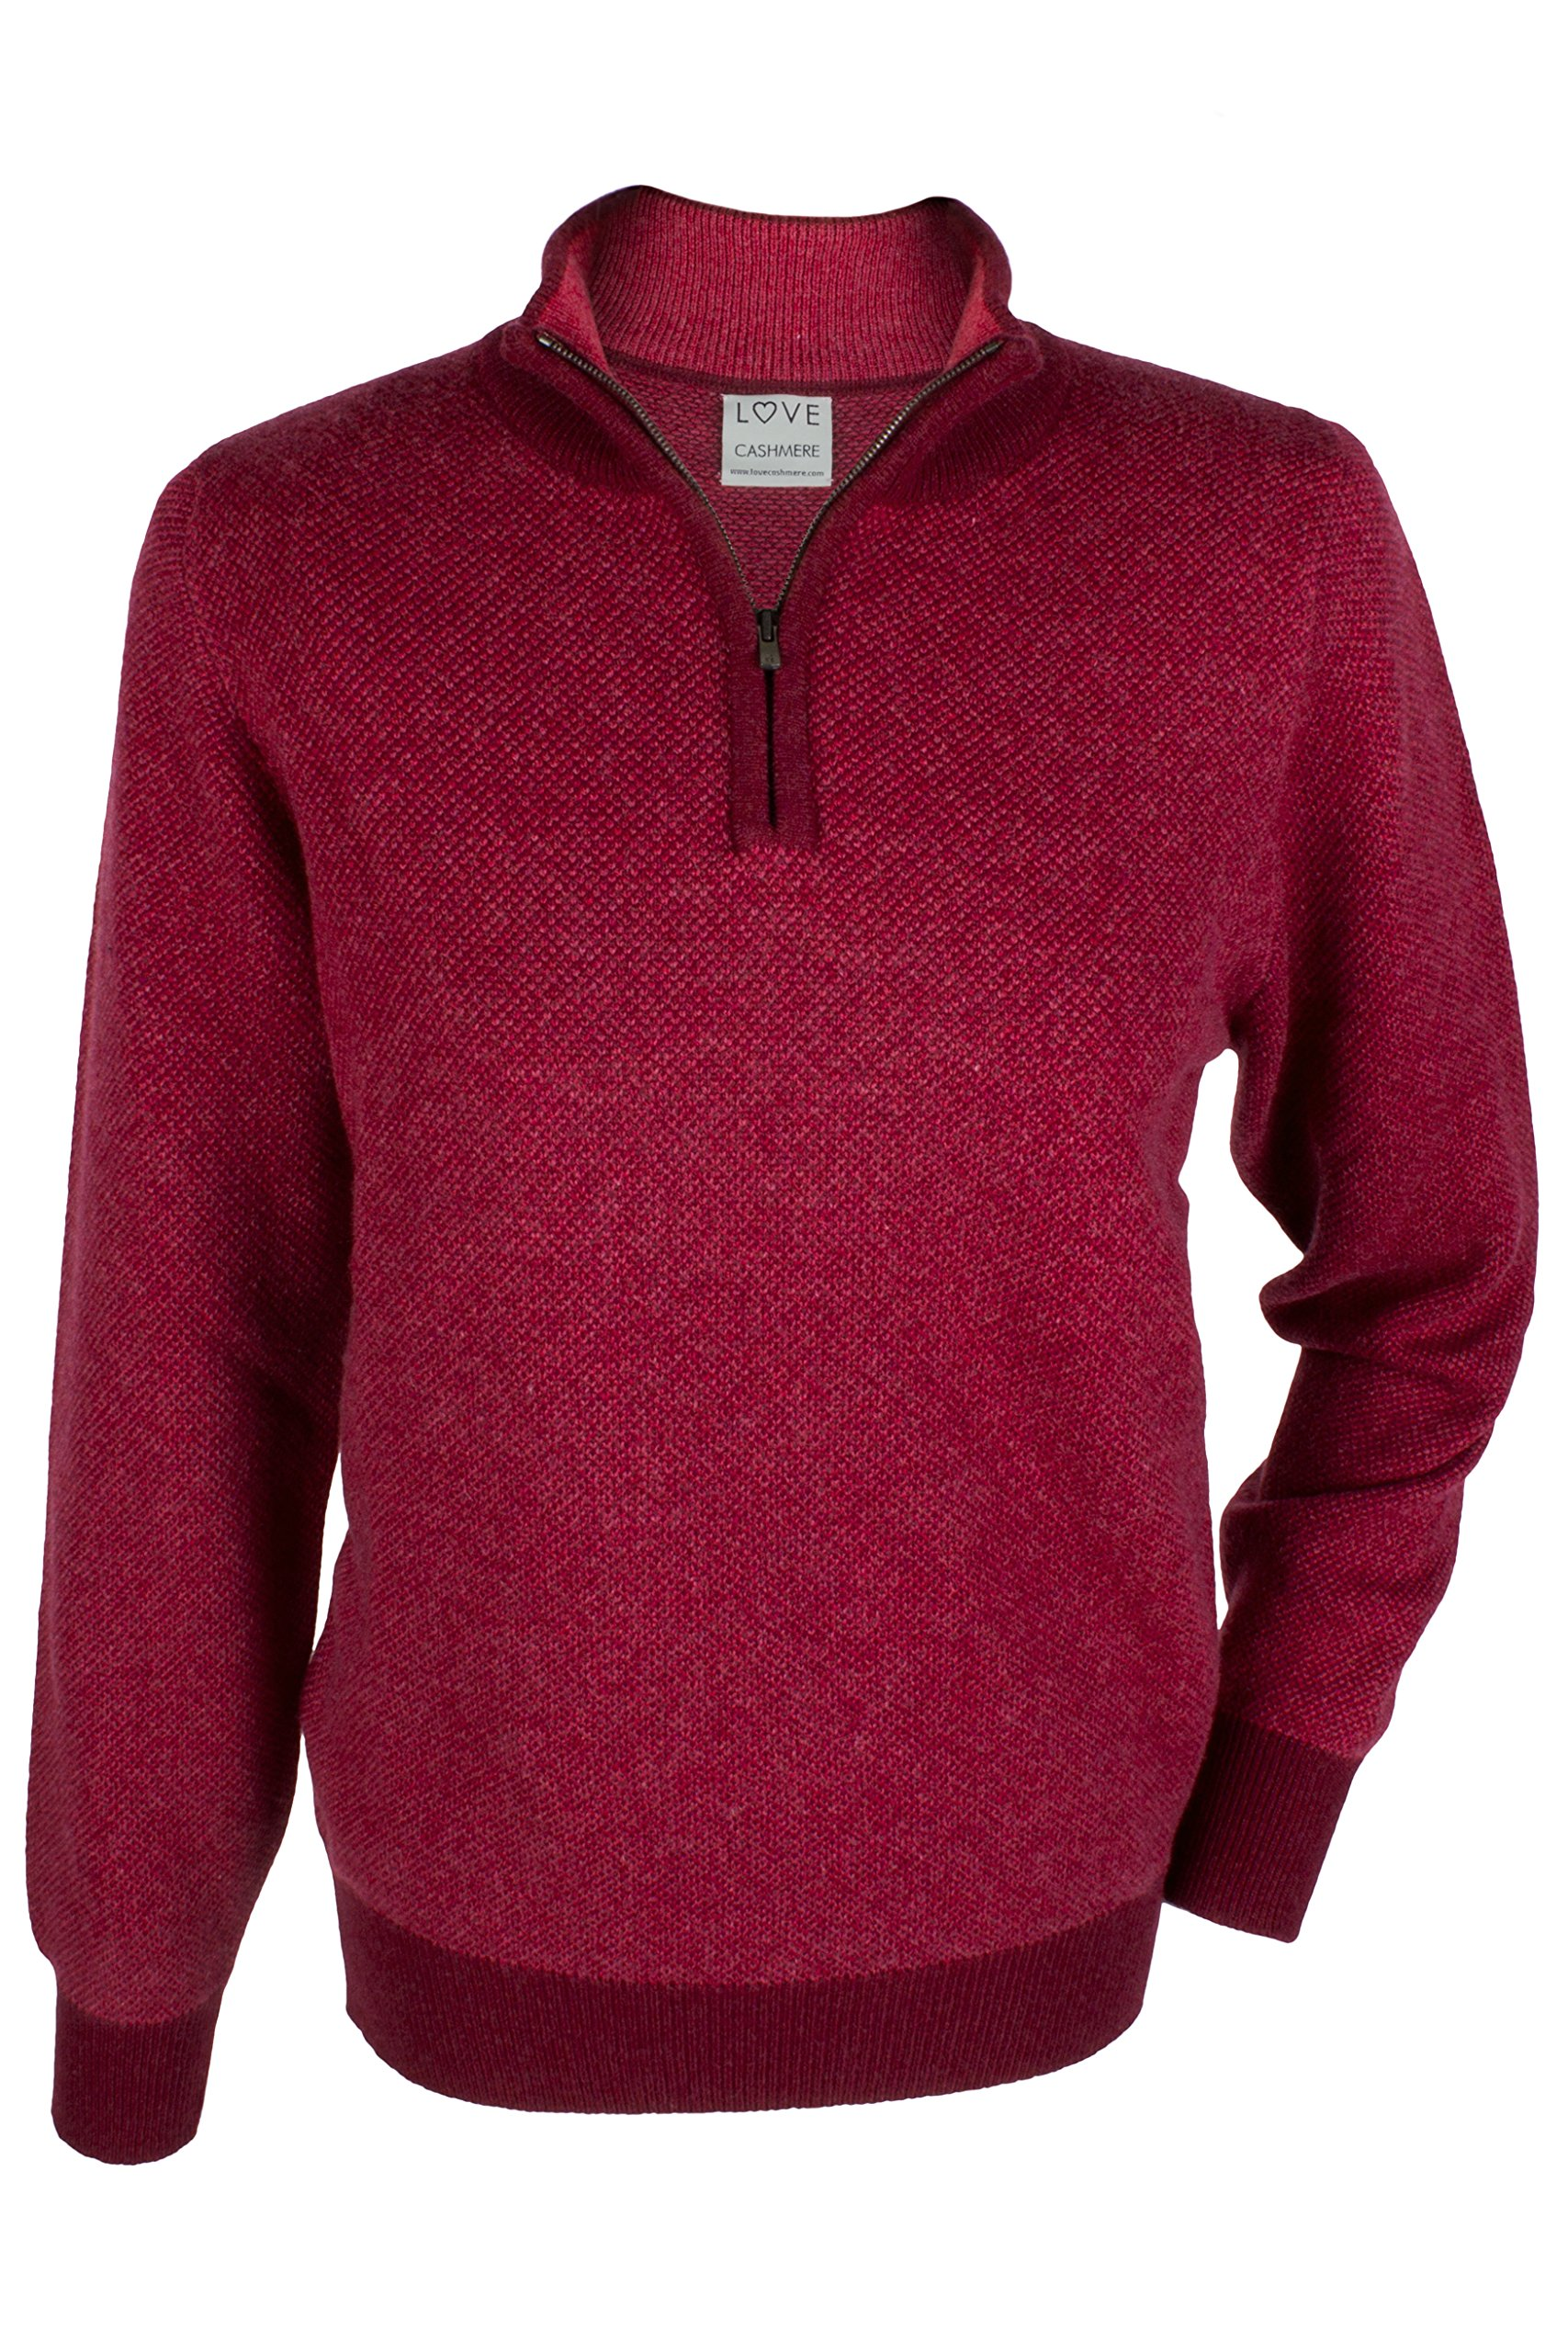 Mens 100% Cashmere Zip Neck Sweater - Raspberry Red Mix - made in Scotland by Love Cashmere